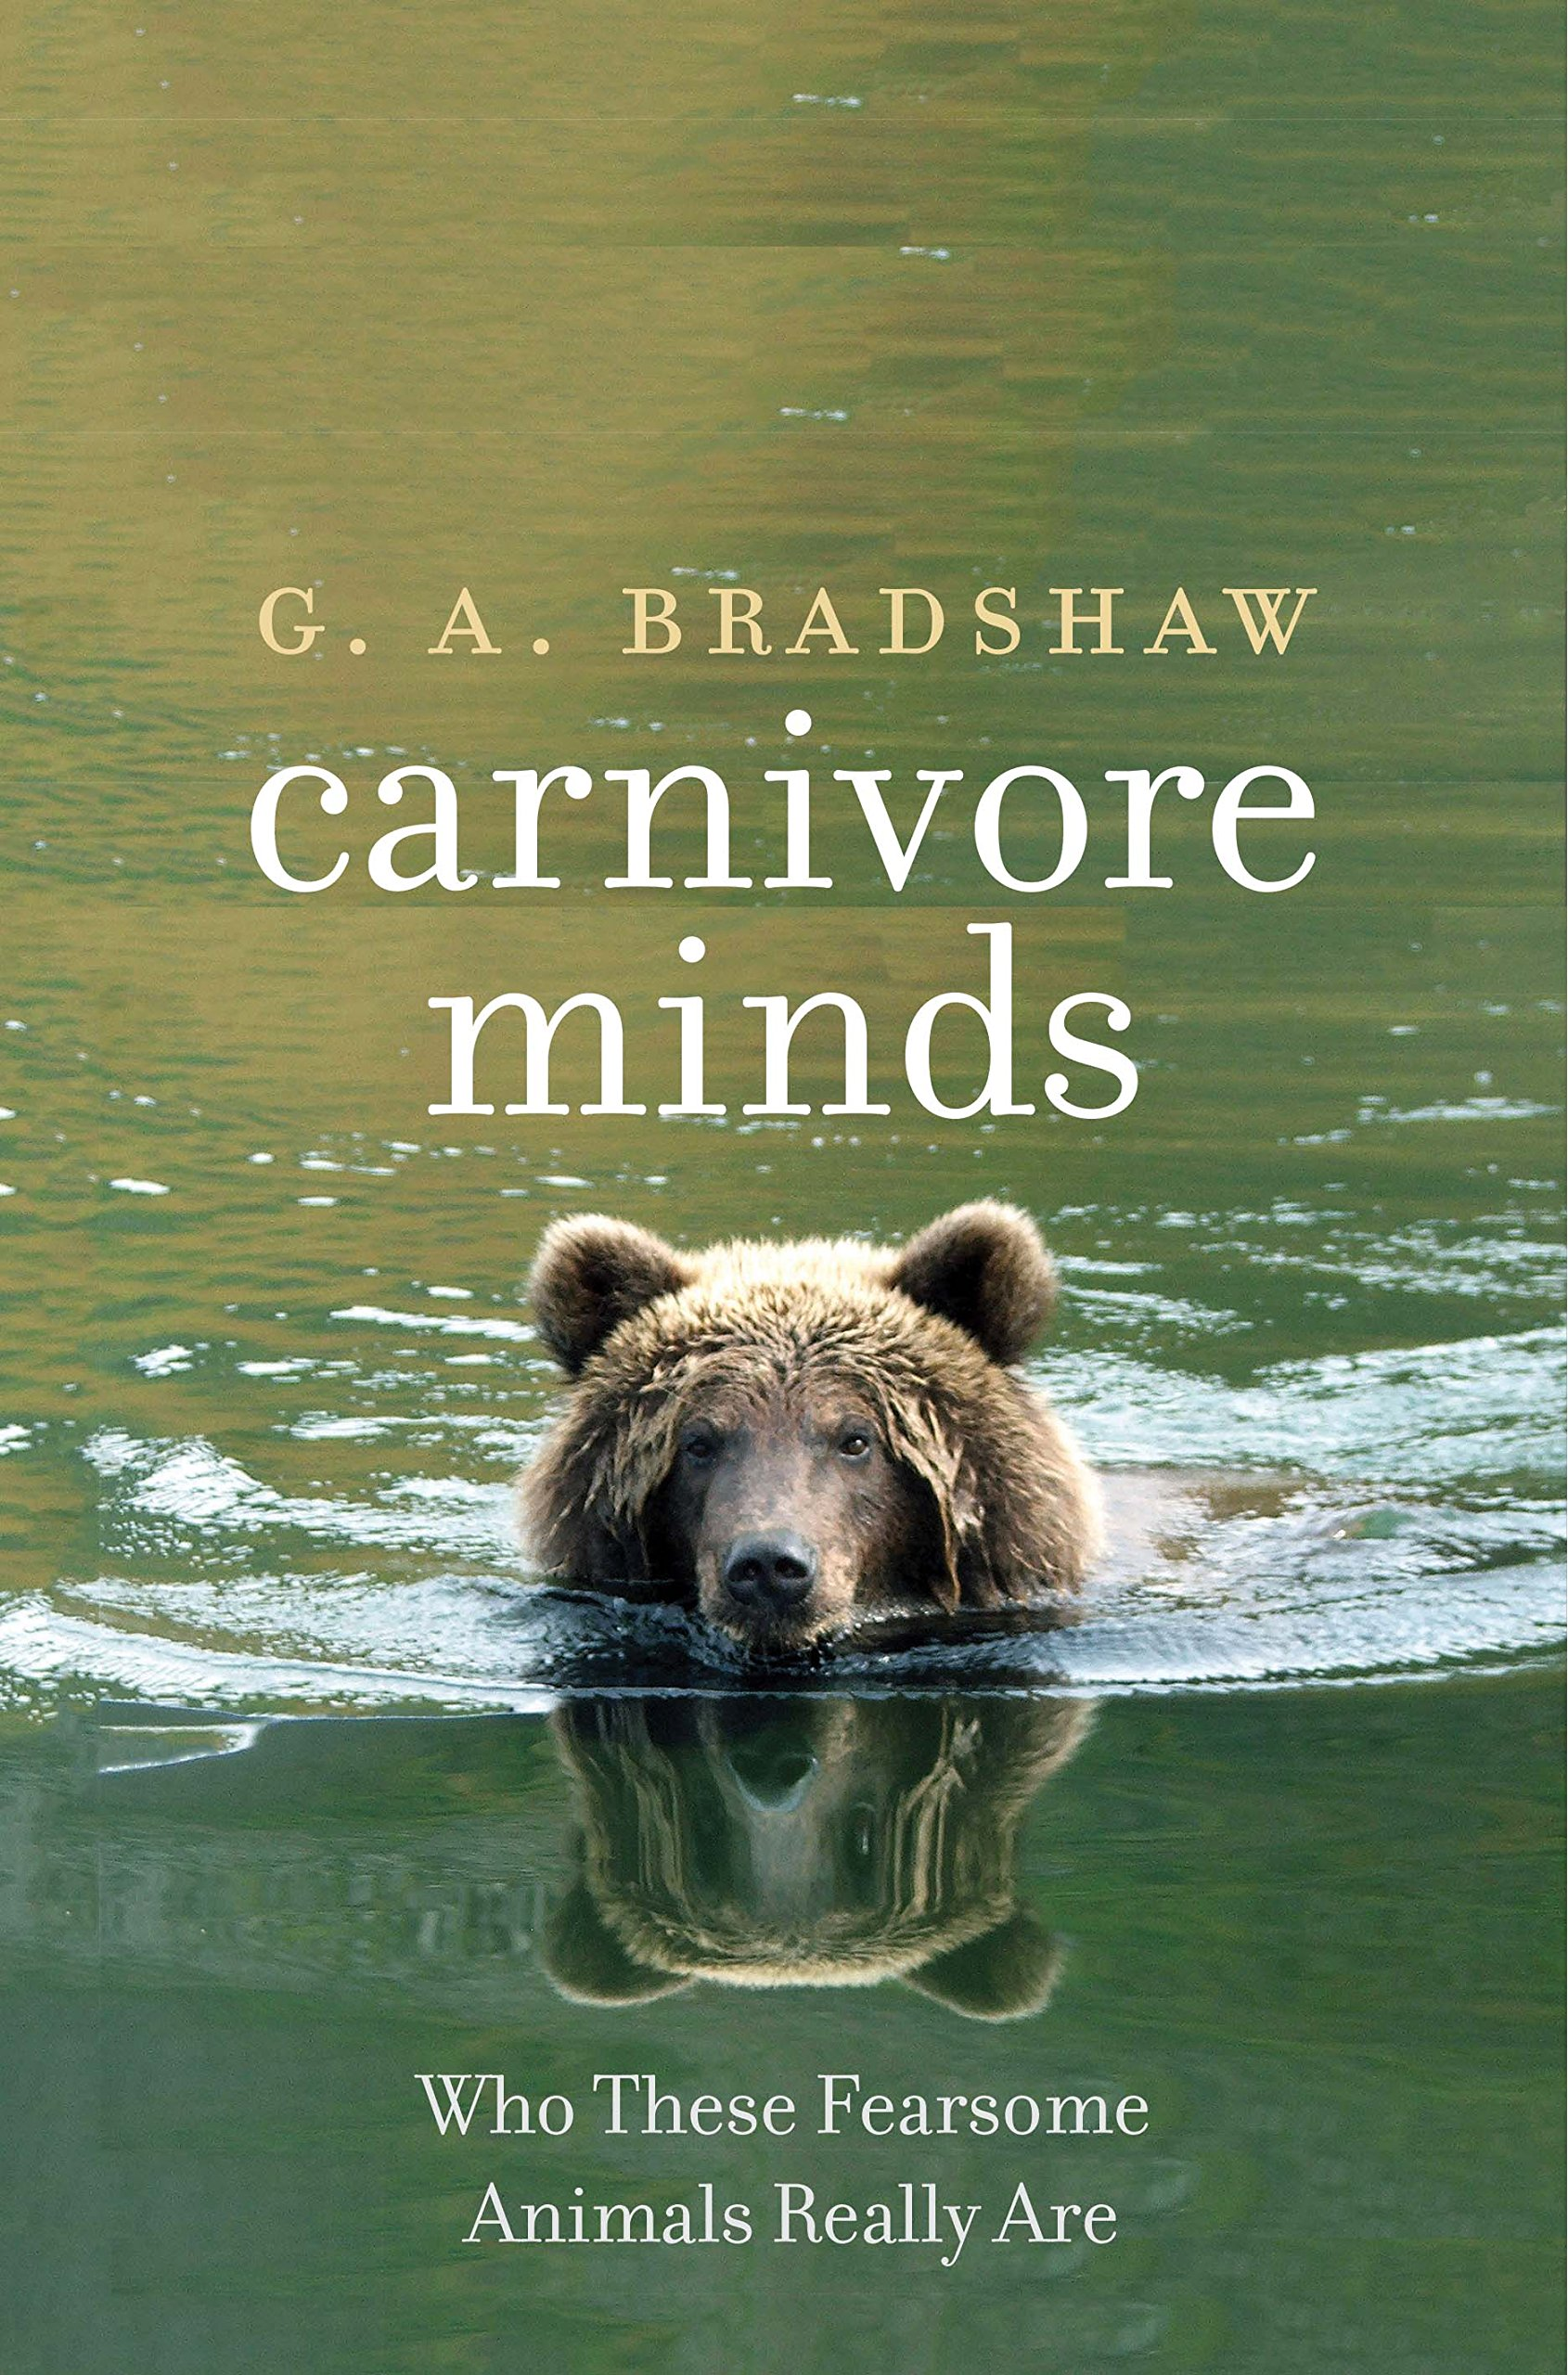 Carnivore minds who these fearsome animals really are g a carnivore minds who these fearsome animals really are g a bradshaw 9780300218152 amazon books fandeluxe Images